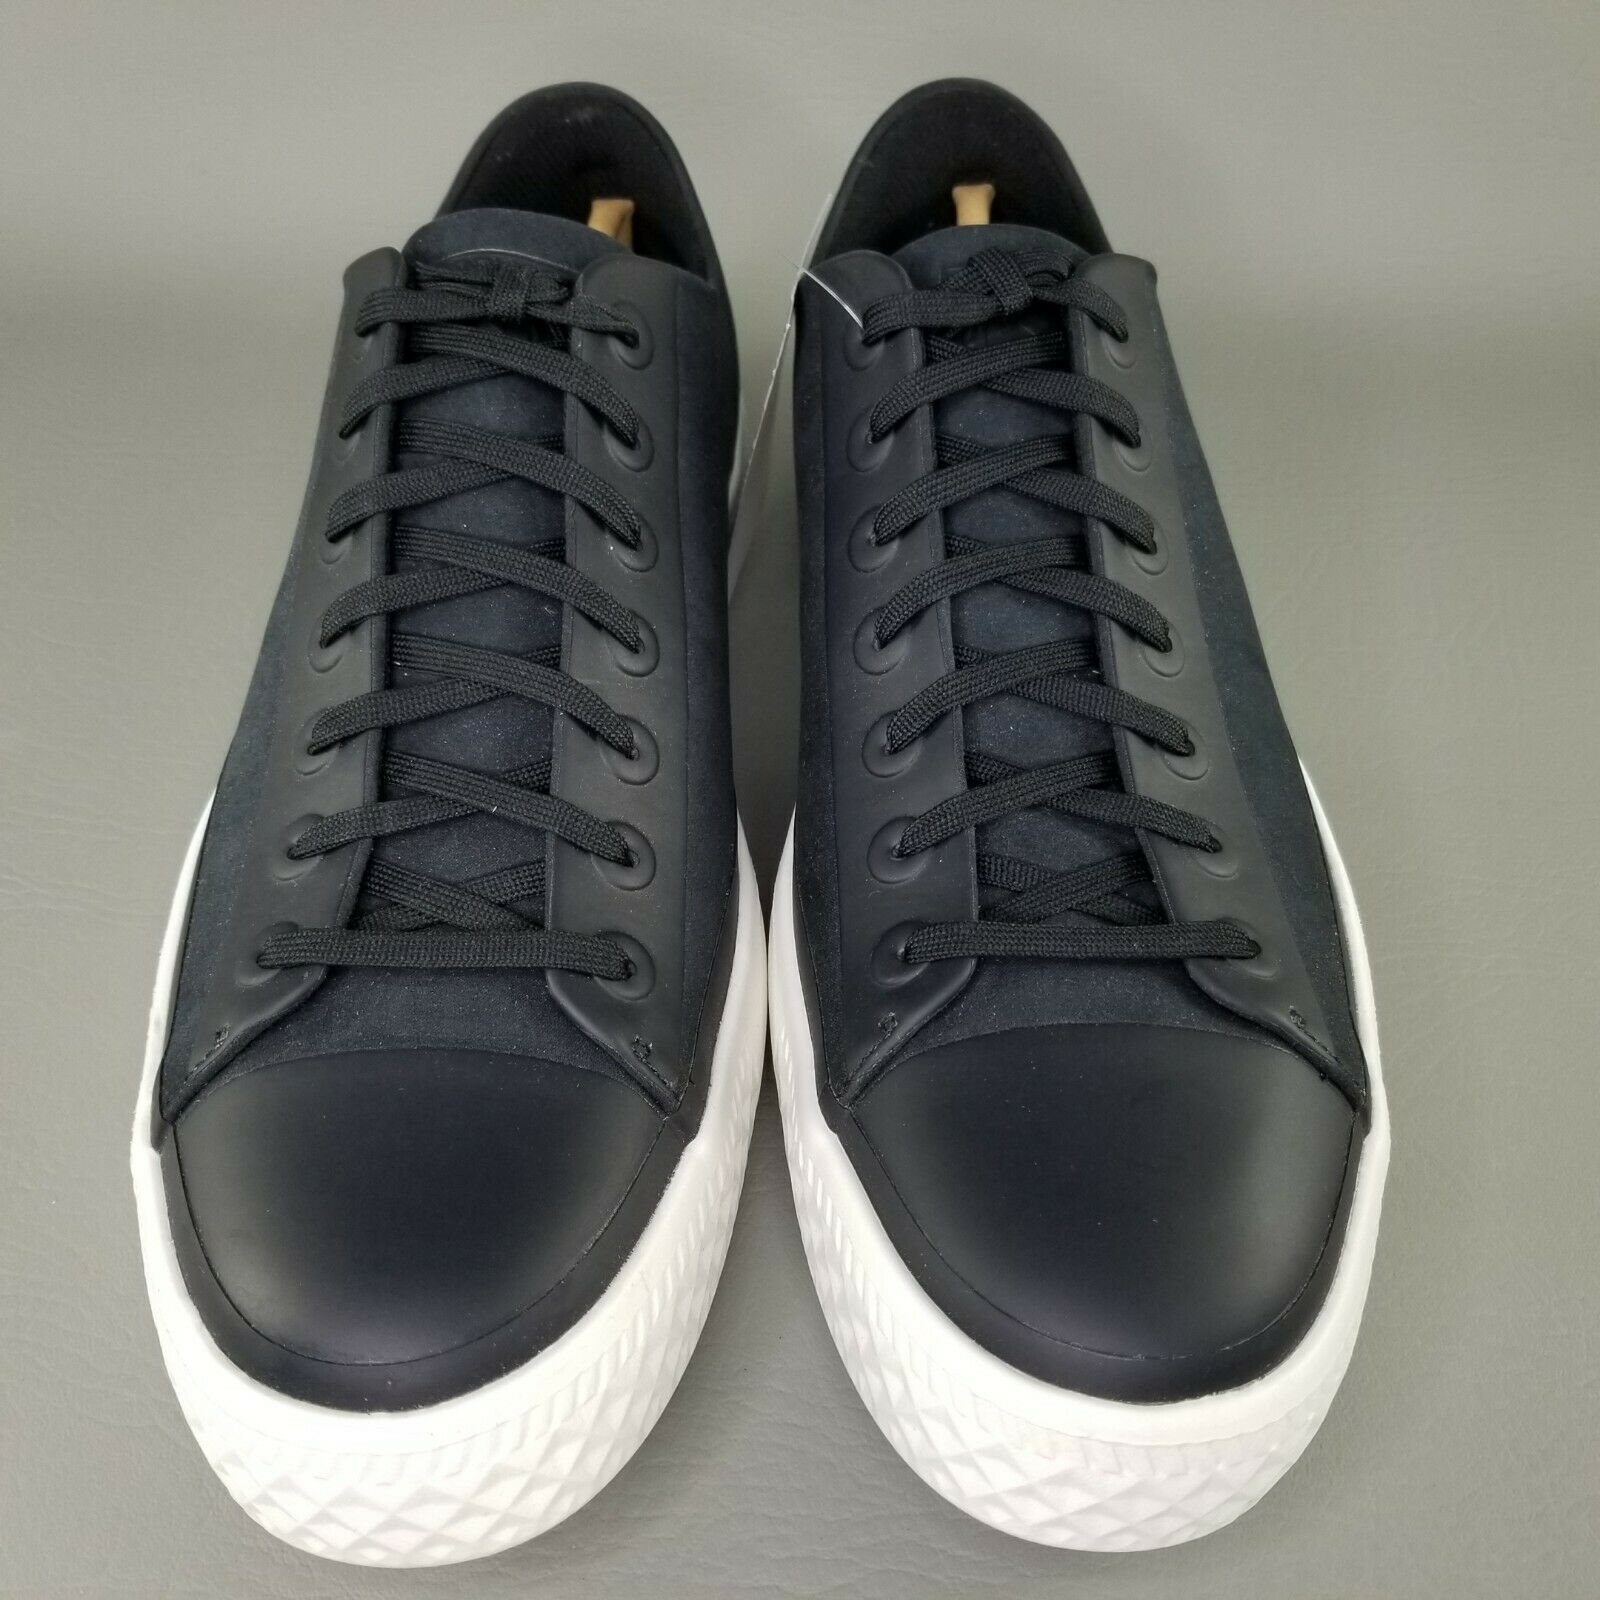 Converse CTAS Modern Ox Shoes Size 11 Mens Chuck Taylor Low Sneaker Black White